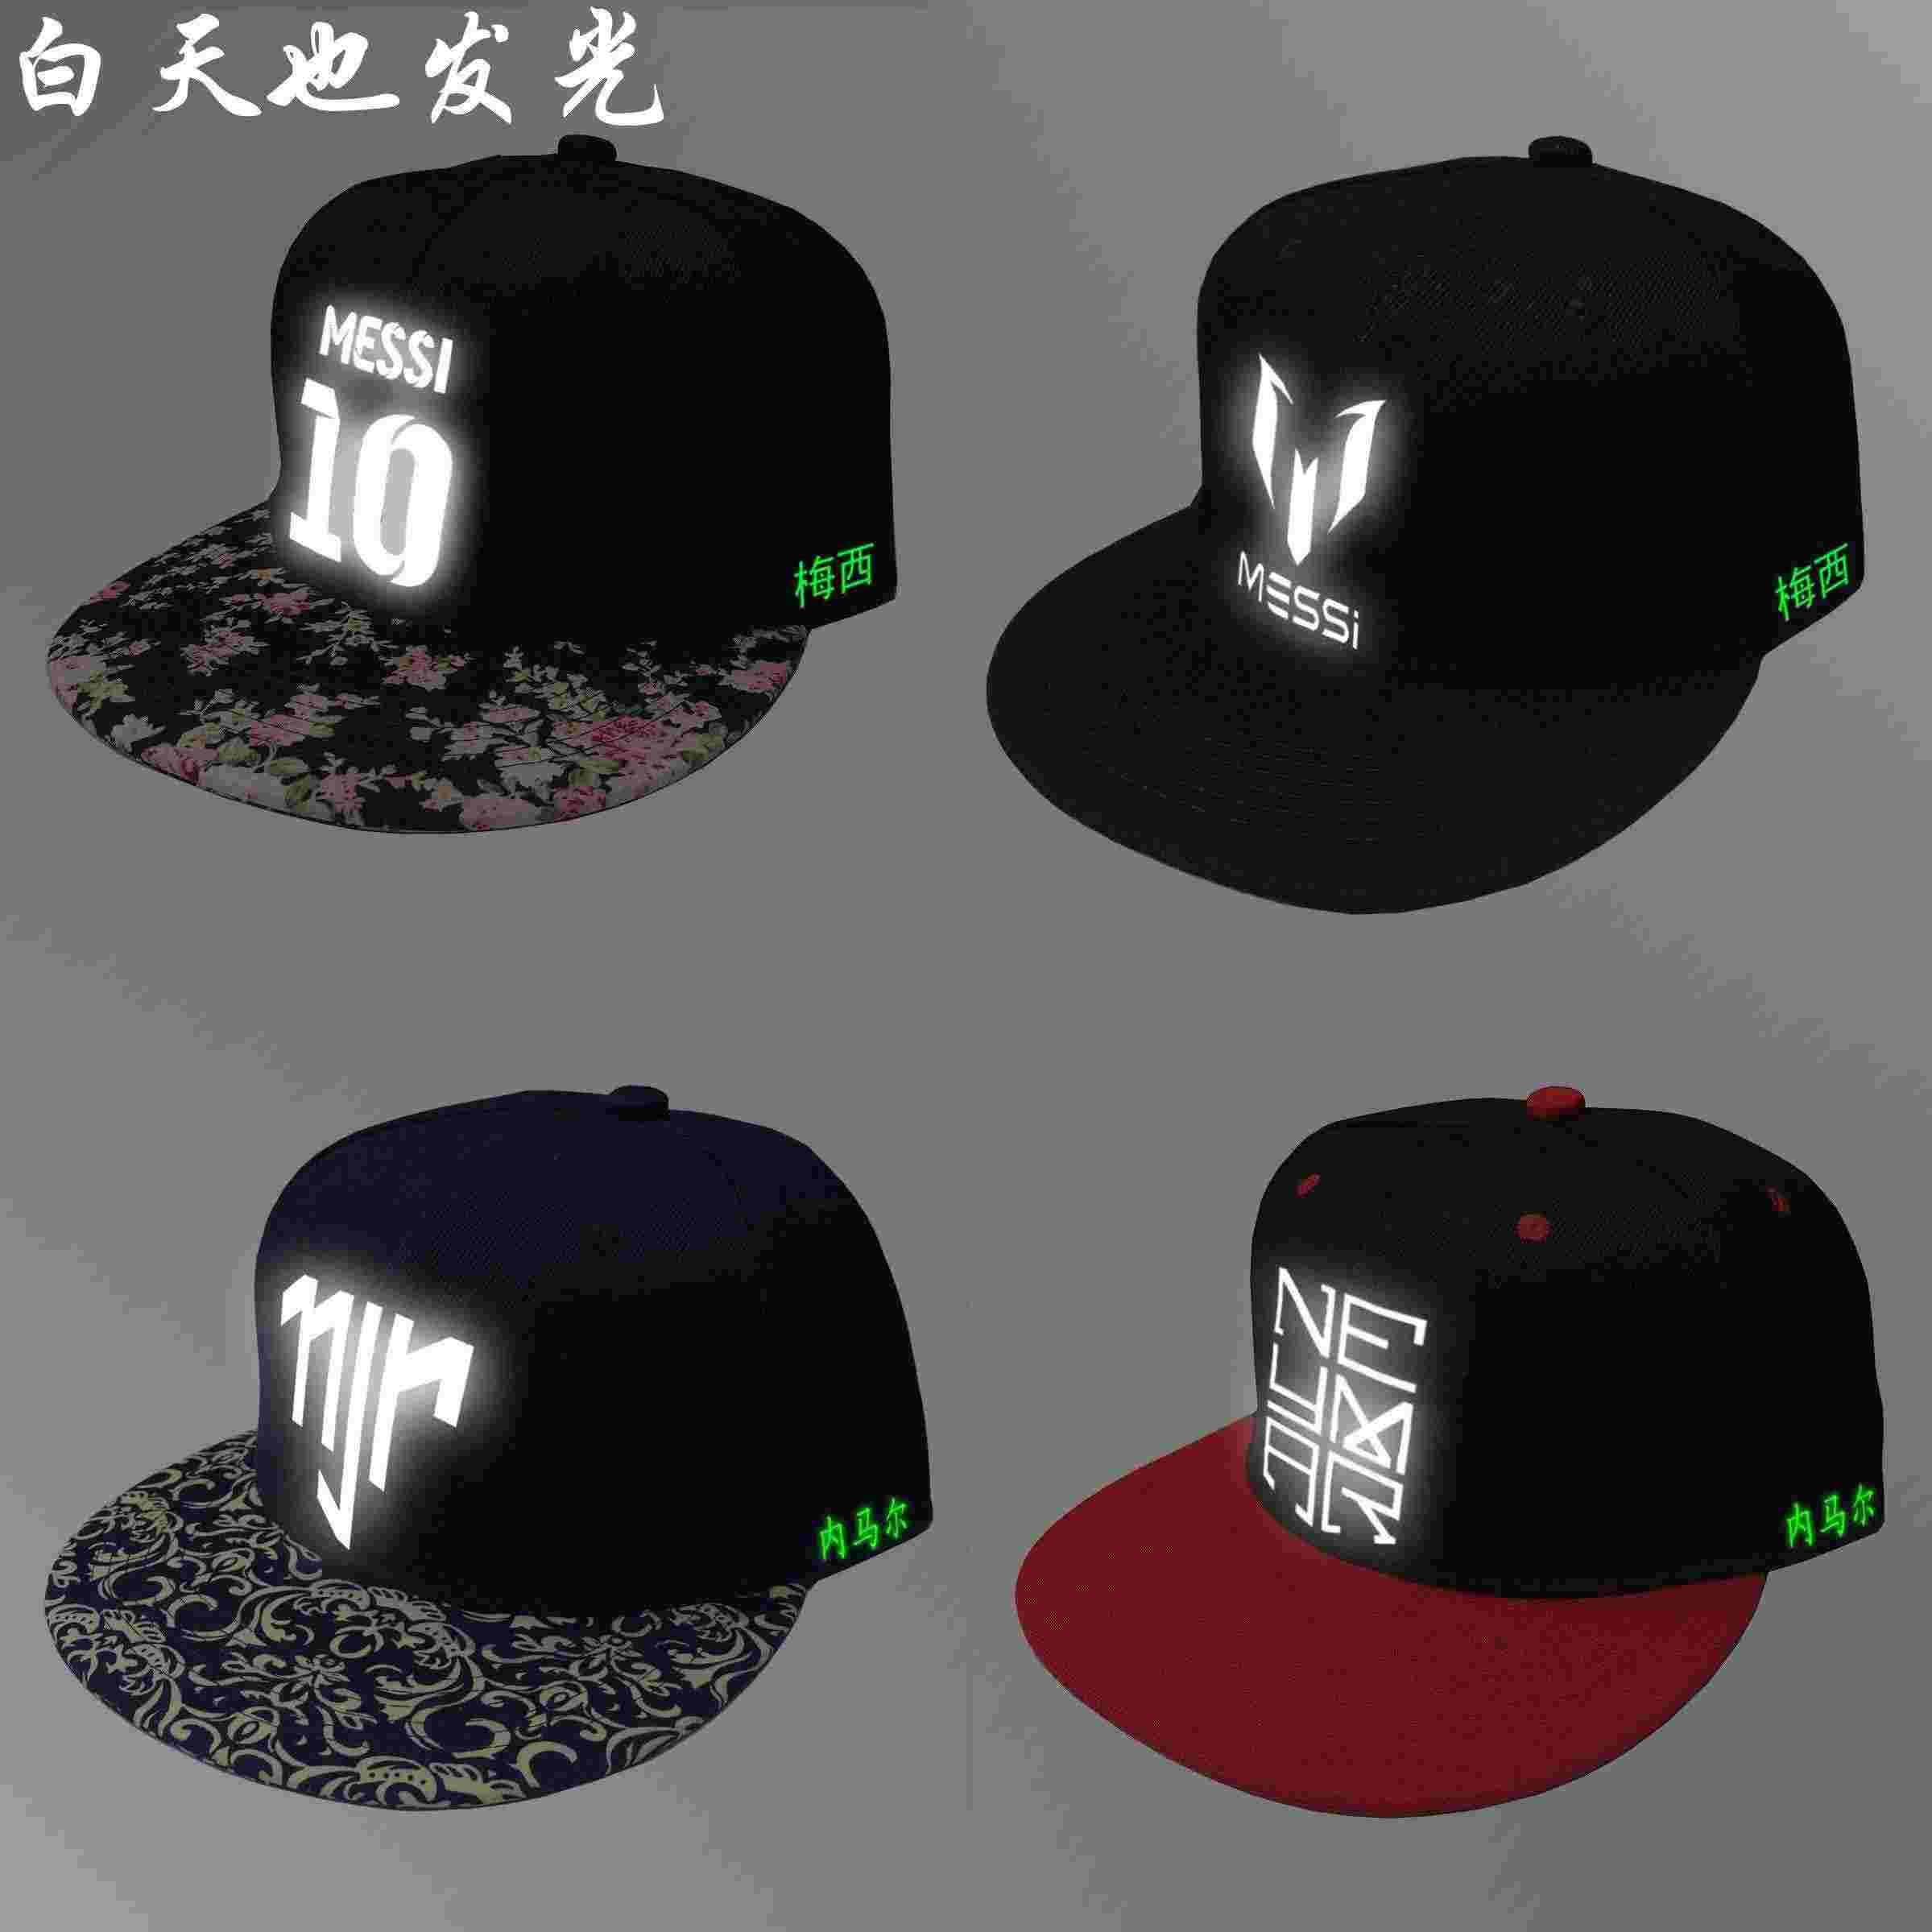 ... spain messi hat messi logo with a hat neymar with hip hop cap  reflective luminous football 30a45d80a705